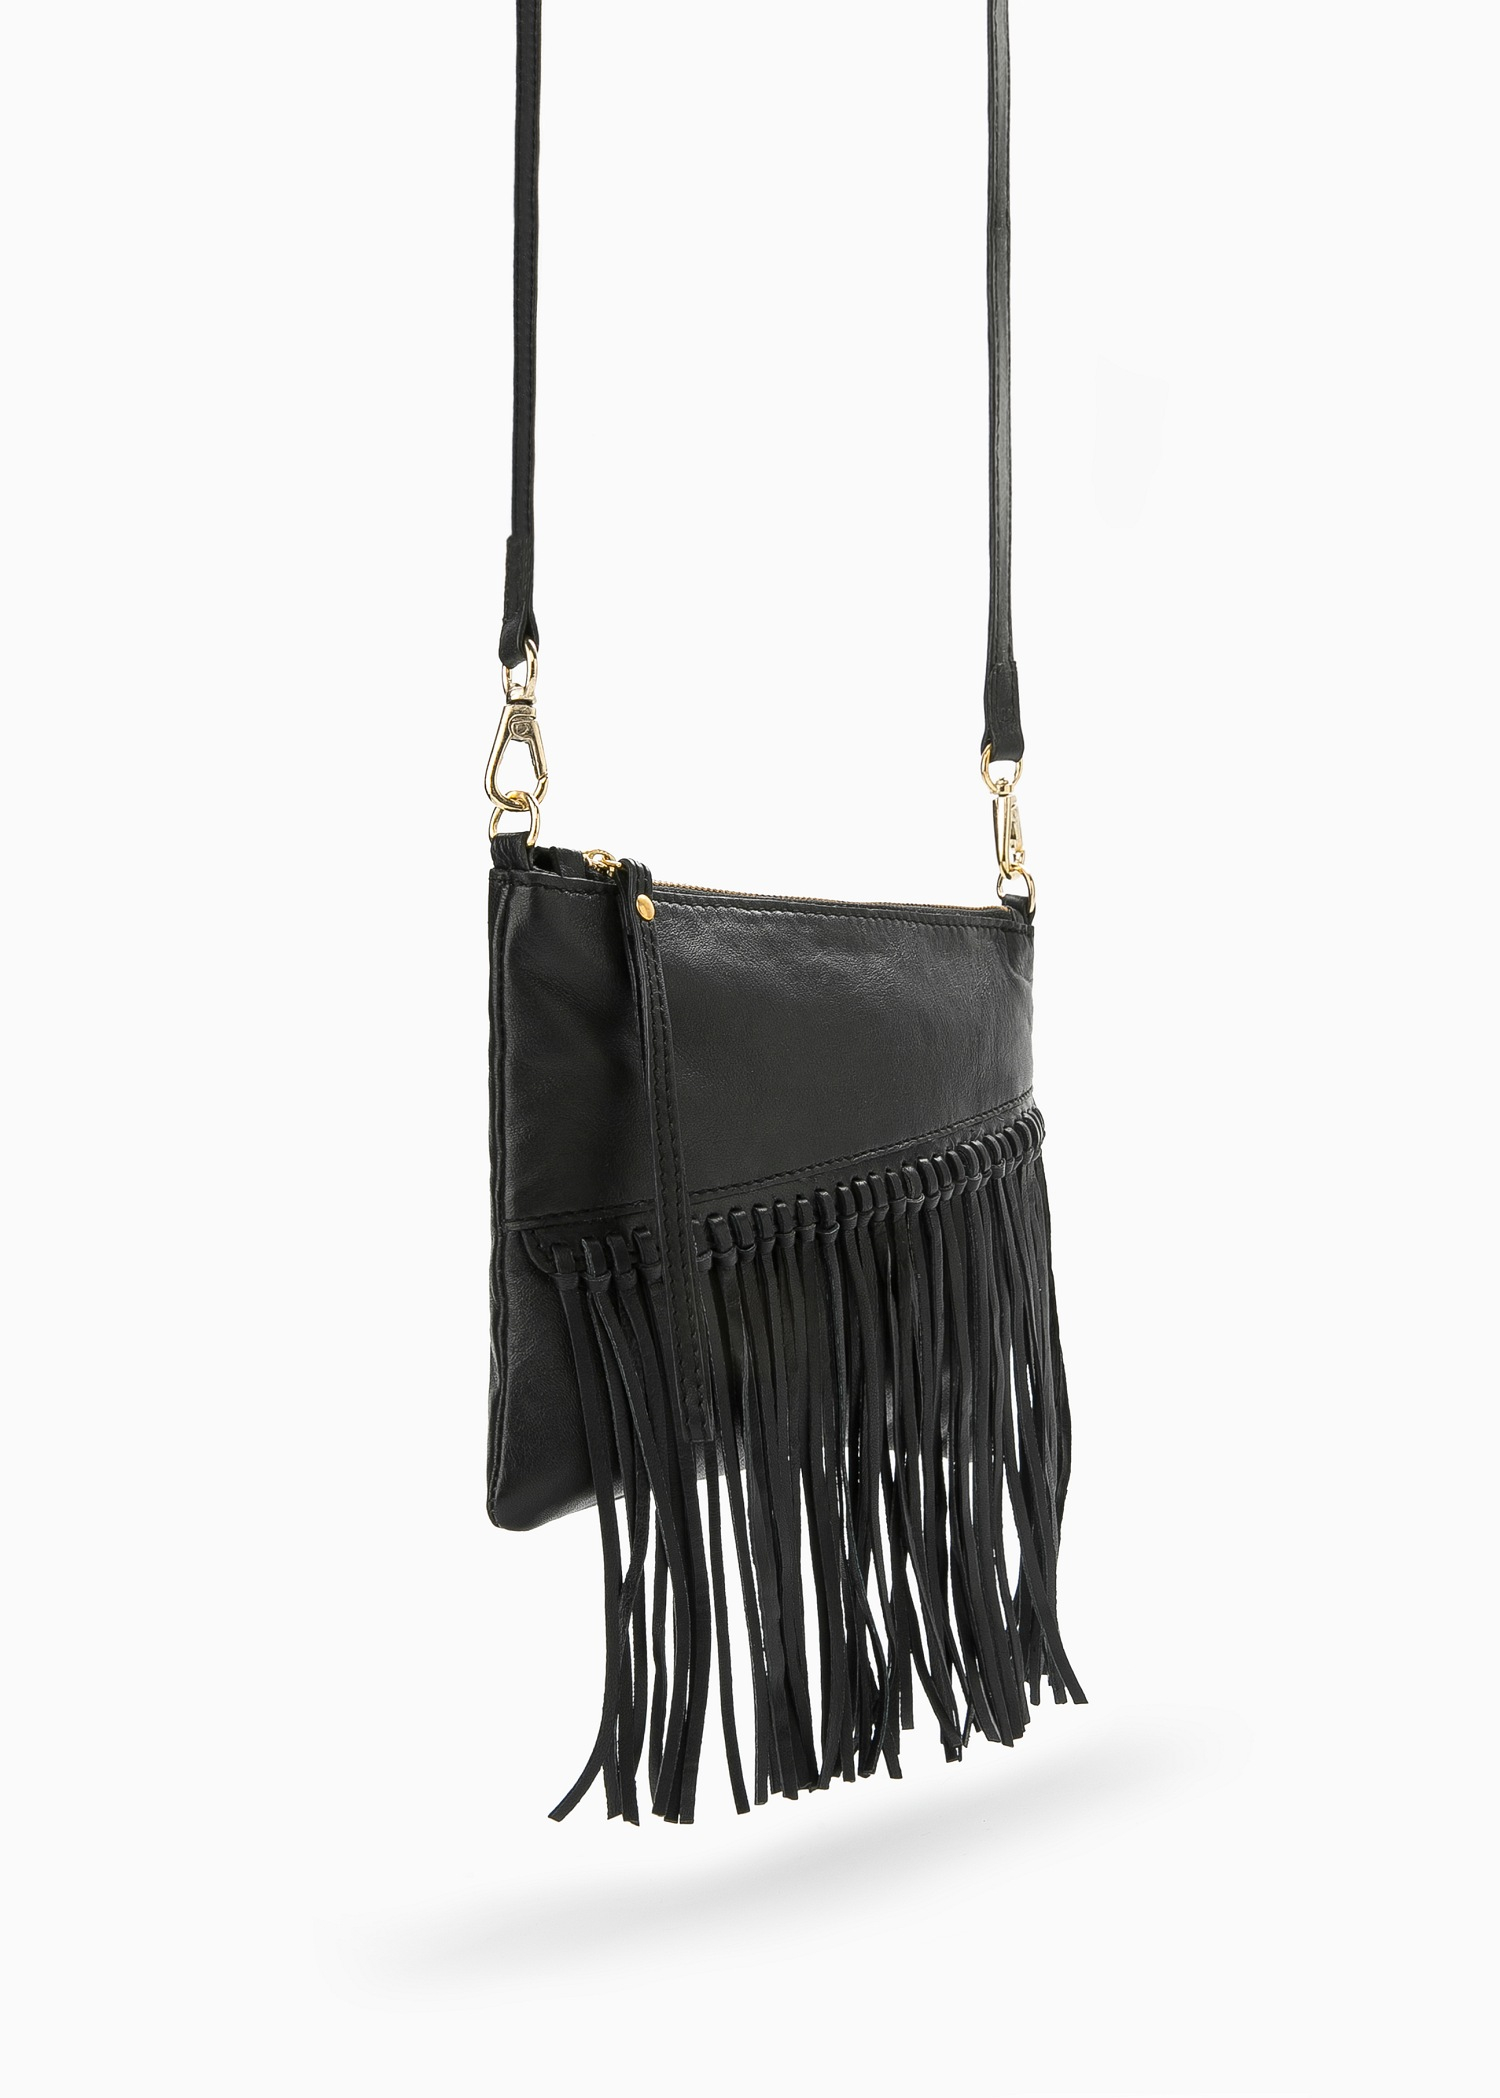 Black Statement Faux Leather Fringe Back Denim Jacket. Order today & shop it like it's hot at Missguided. A denim jacket in a black hue with faux fringe statement feature on the back and studded detail. SMS email facebook twitter Add to Bag Please select garment size to add to your basket.